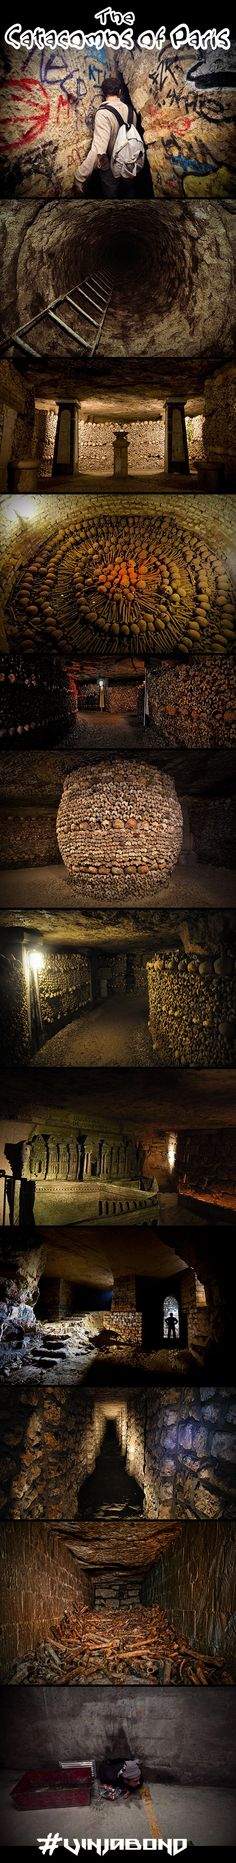 The Catacombs of Paris Experience - Hidden beneath the streets of Paris is 6…